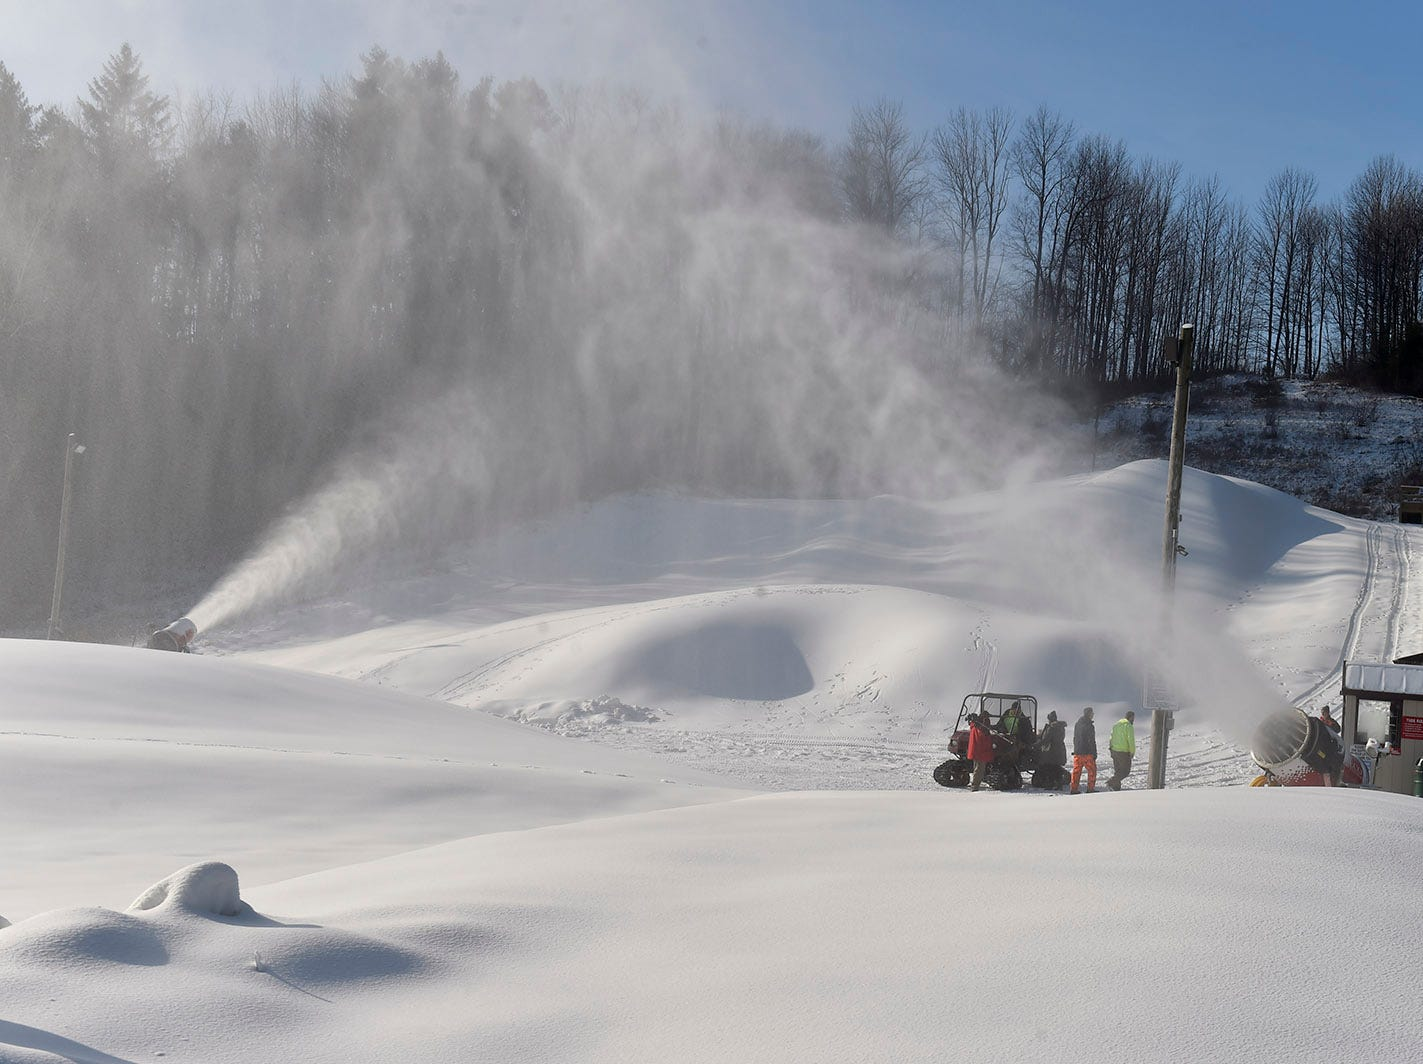 Making snow at Winter Park in Kewaunee. The kid-friendly park offers tubing, skiing, snowboarding and snowshoeing. Tina M. Gohr/USA TODAY NETWORK-Wisconsin